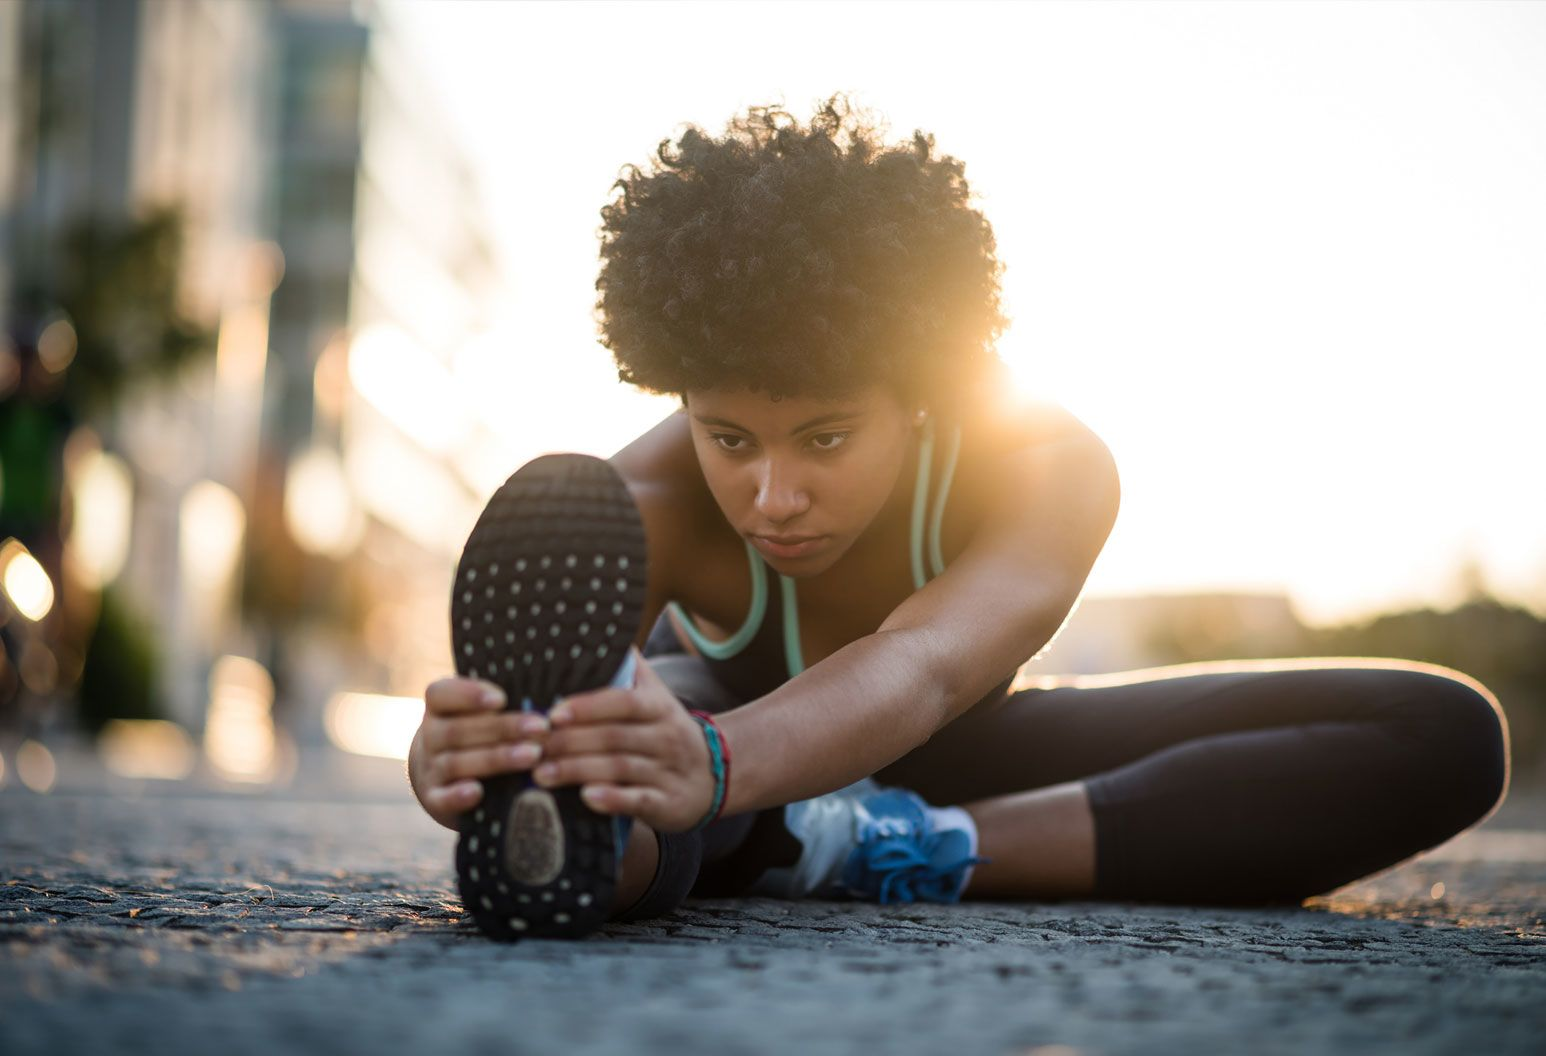 An african american woman with short, curly hair sits on the concrete ground outside and stretches. She has one leg out in front of her and she leans over it. She's wearing black leggings and a black tank top with a bright green trim.